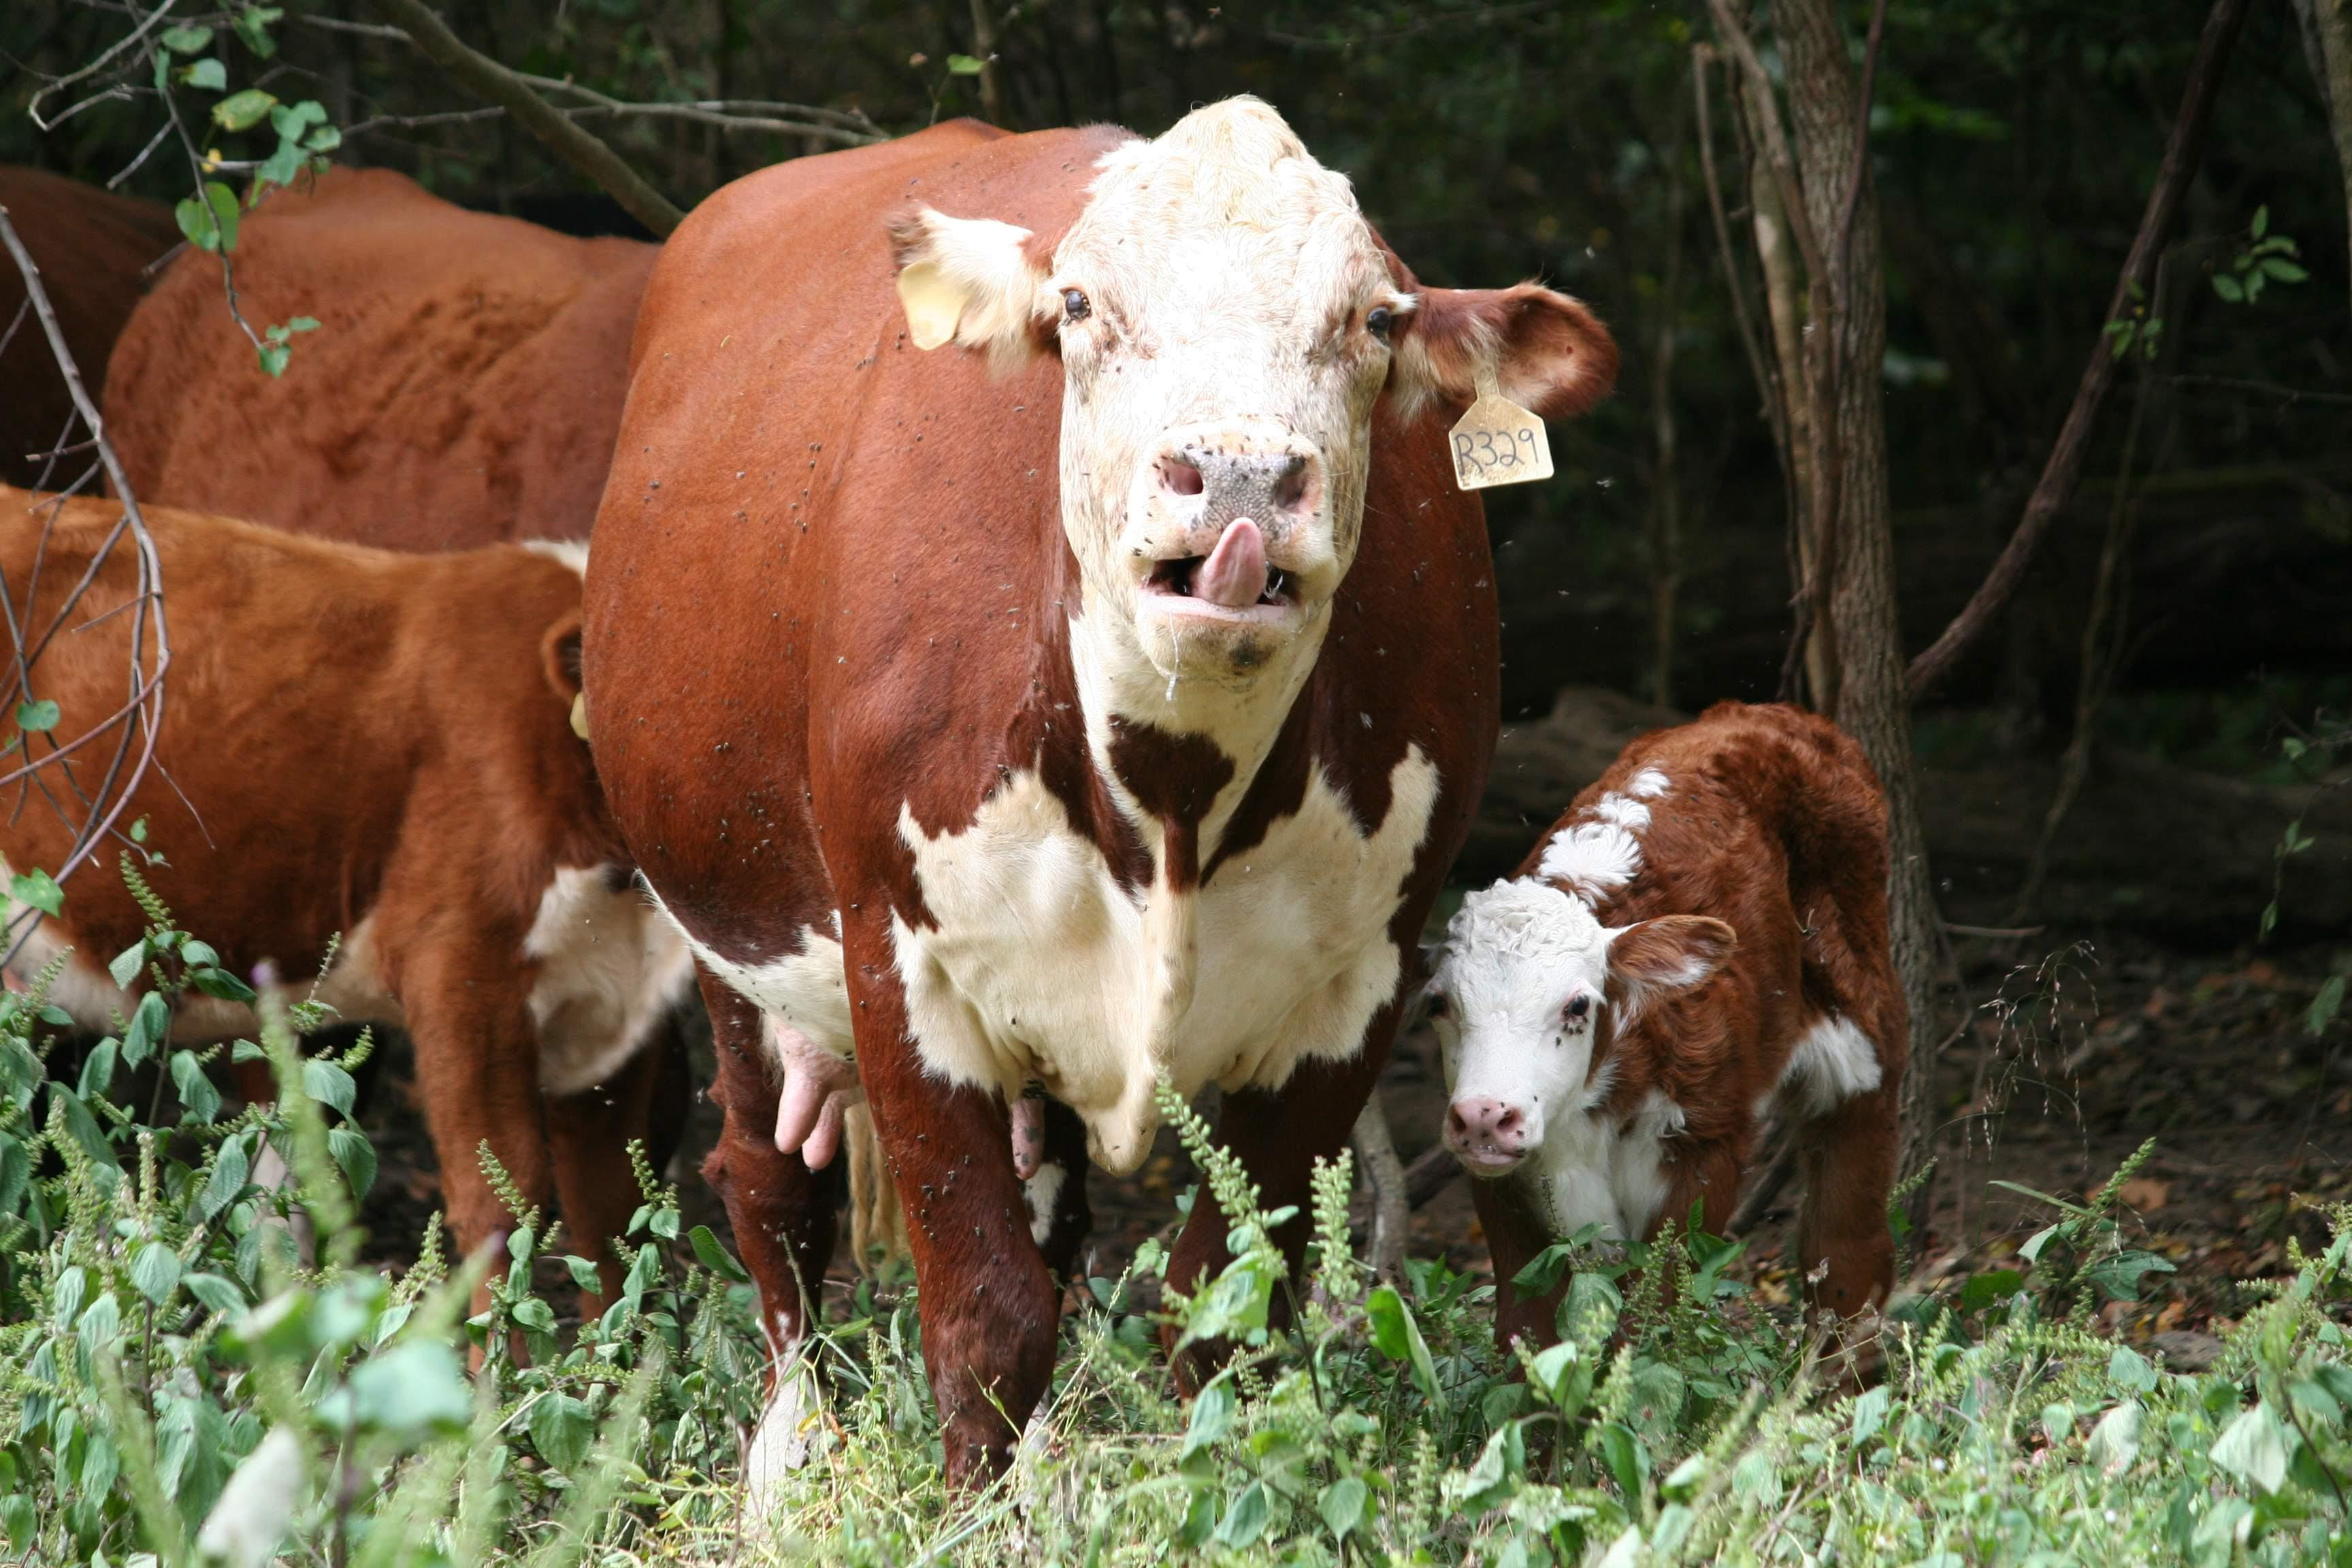 A Hereford cow keeps her baby close in one of the Beshers' pastures in southern Missouri.